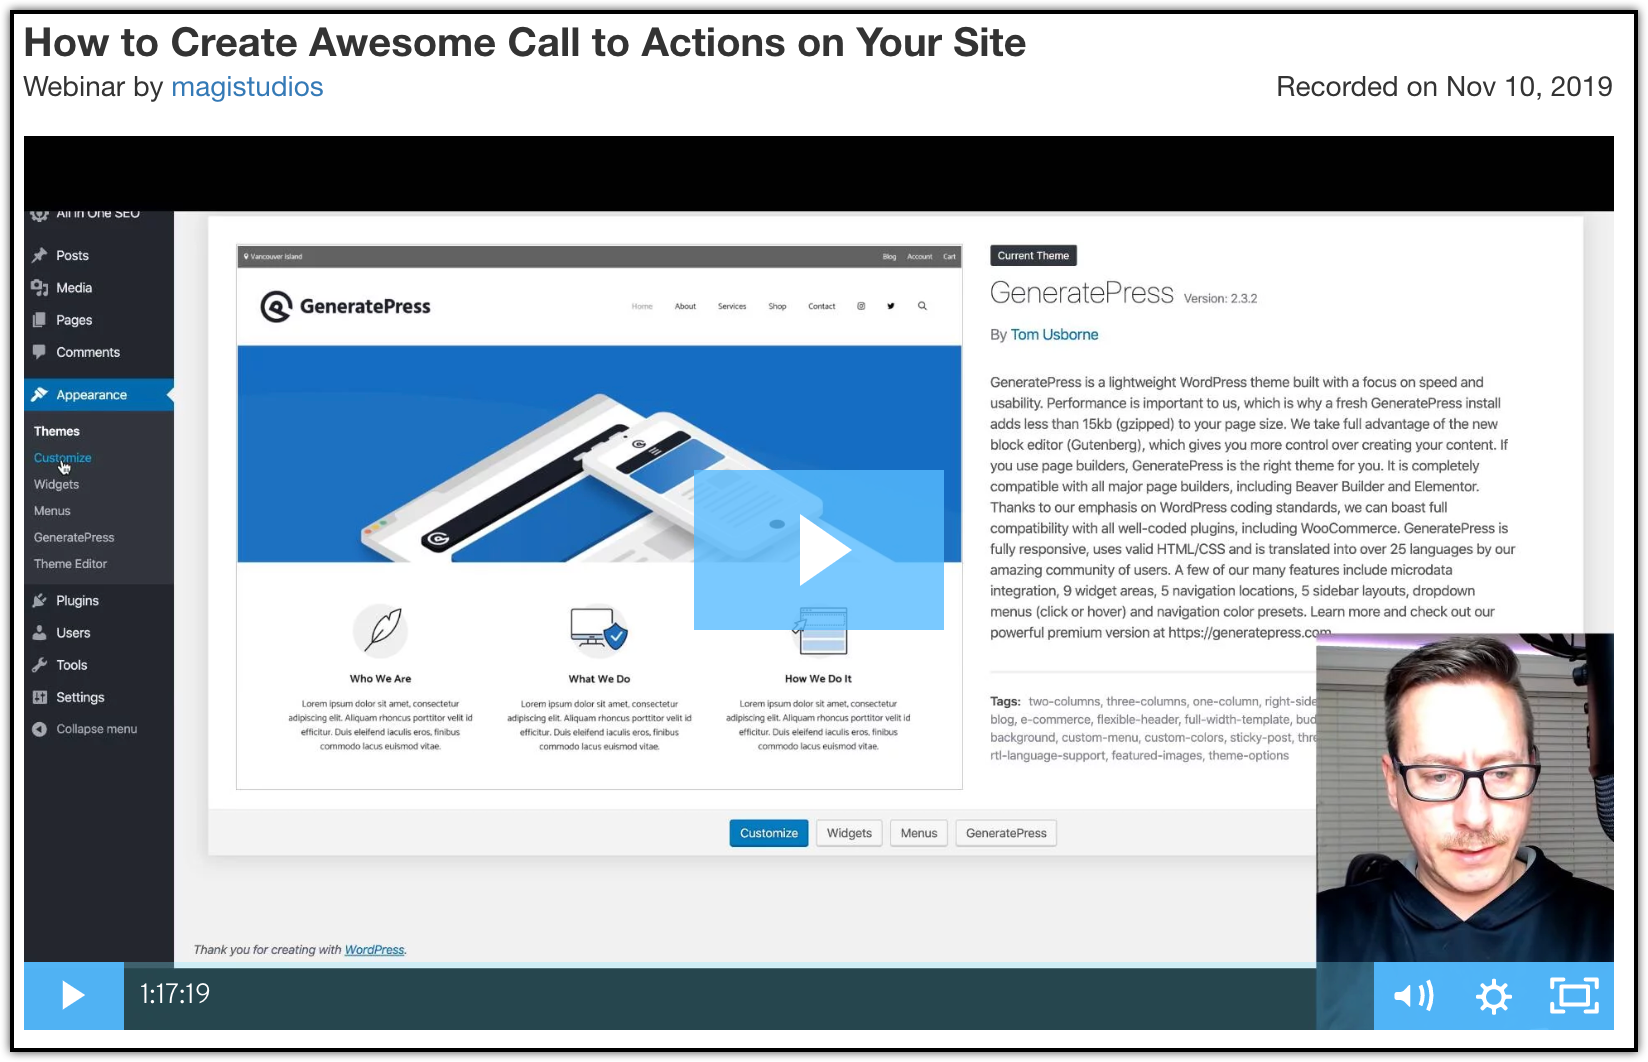 webinar - how to create awesome call to actions